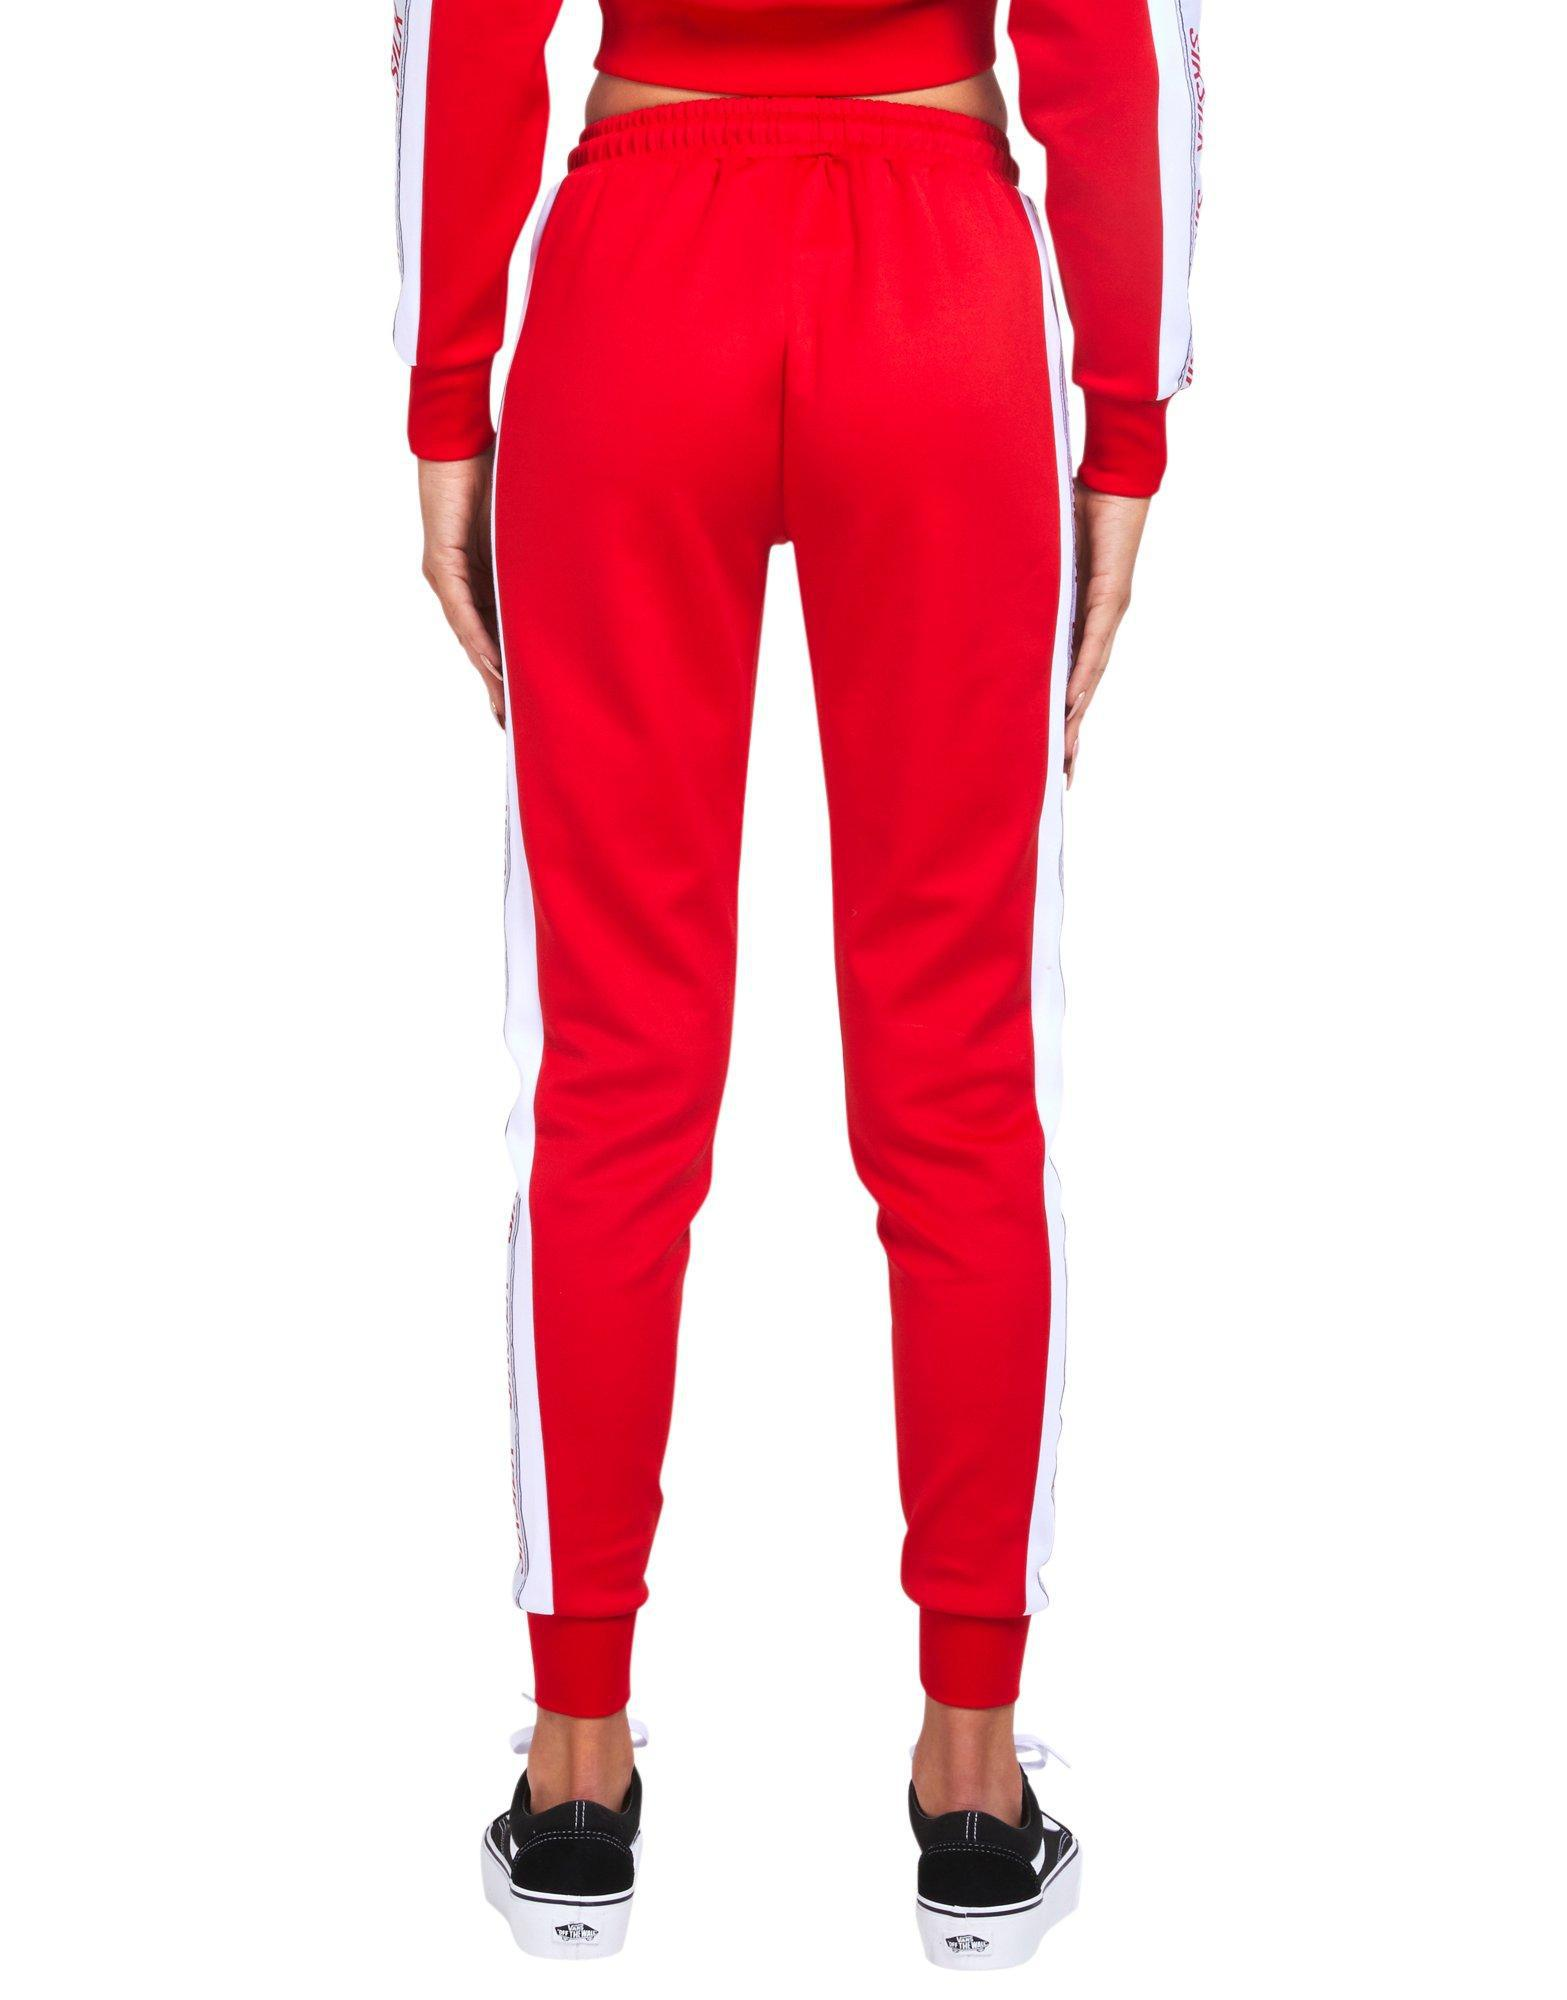 Lyst - SIKSILK Tape Poly Pants in Red 63e7112dbf108